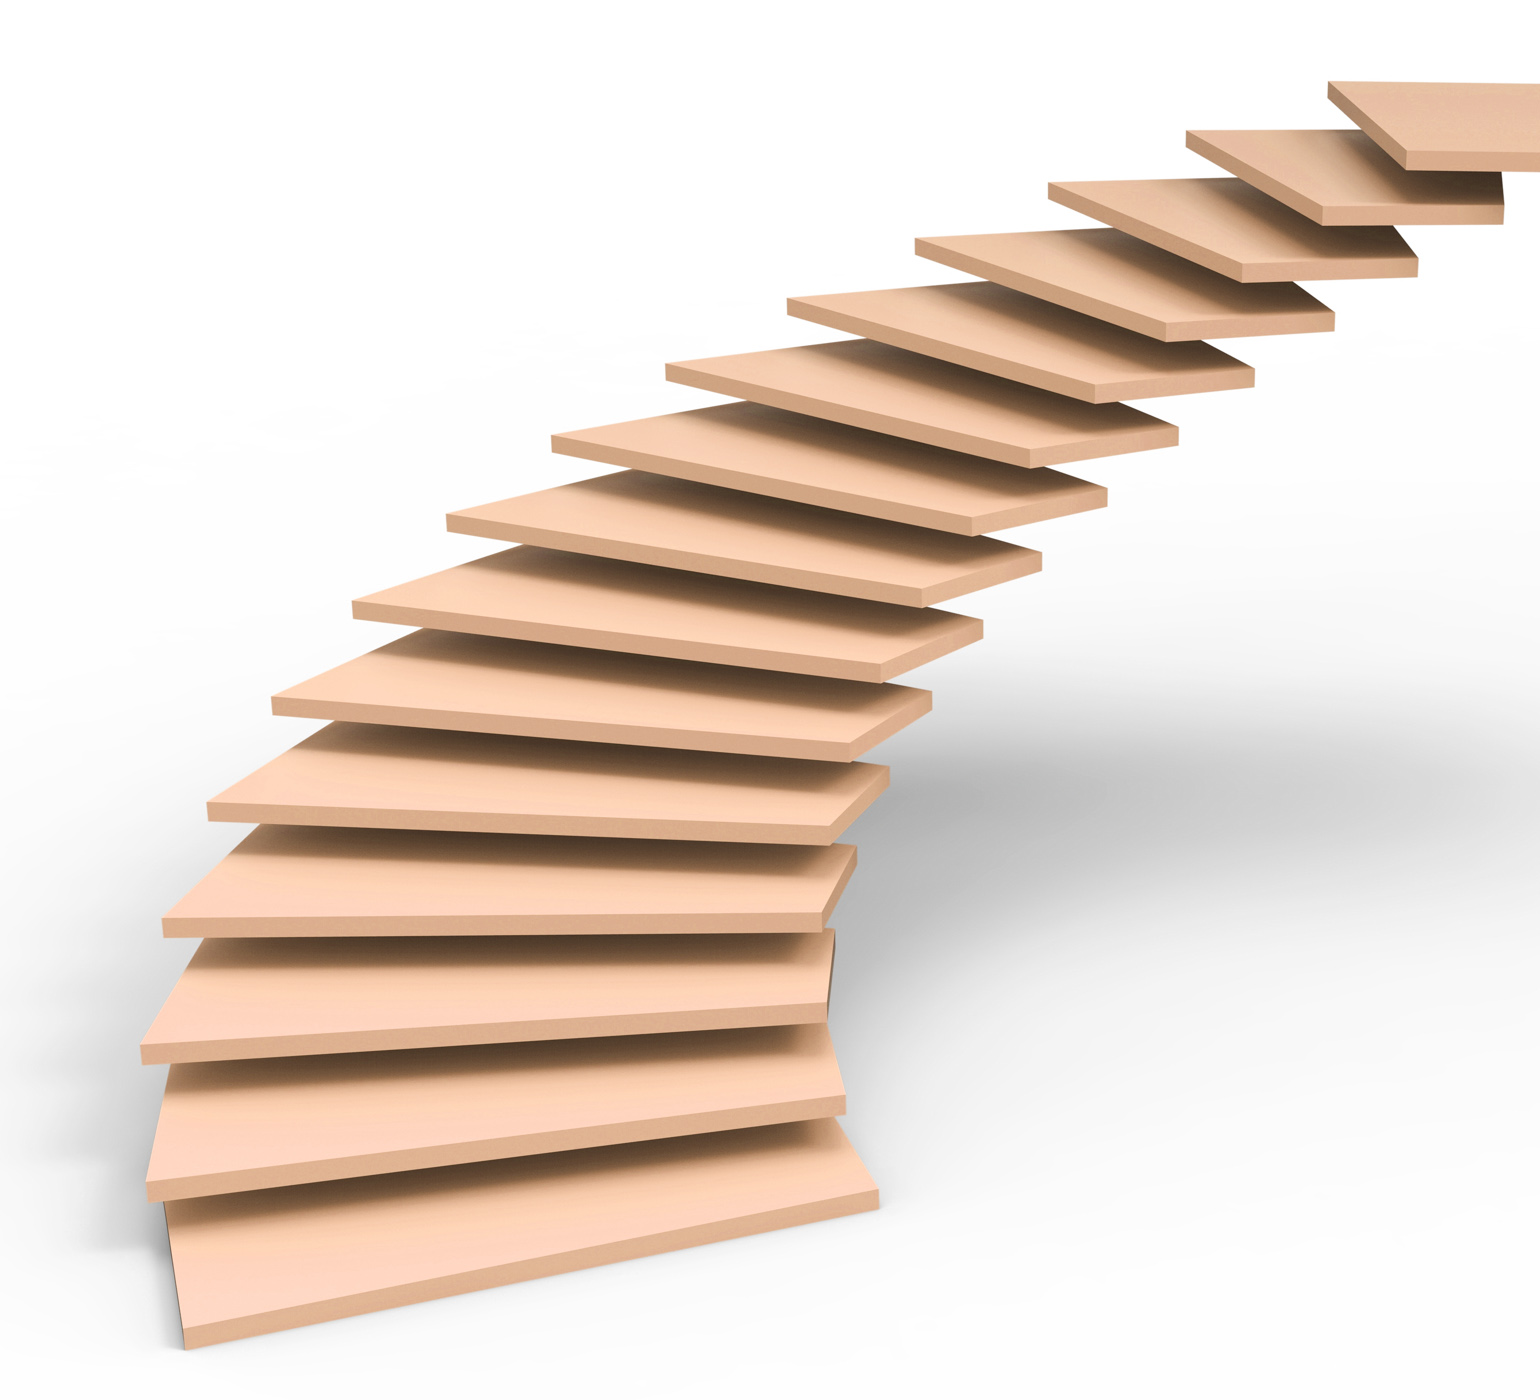 Vision Future Represents Stairs Objectives And Ascending, Aim, Planning, Upwards, Upstairs, HQ Photo